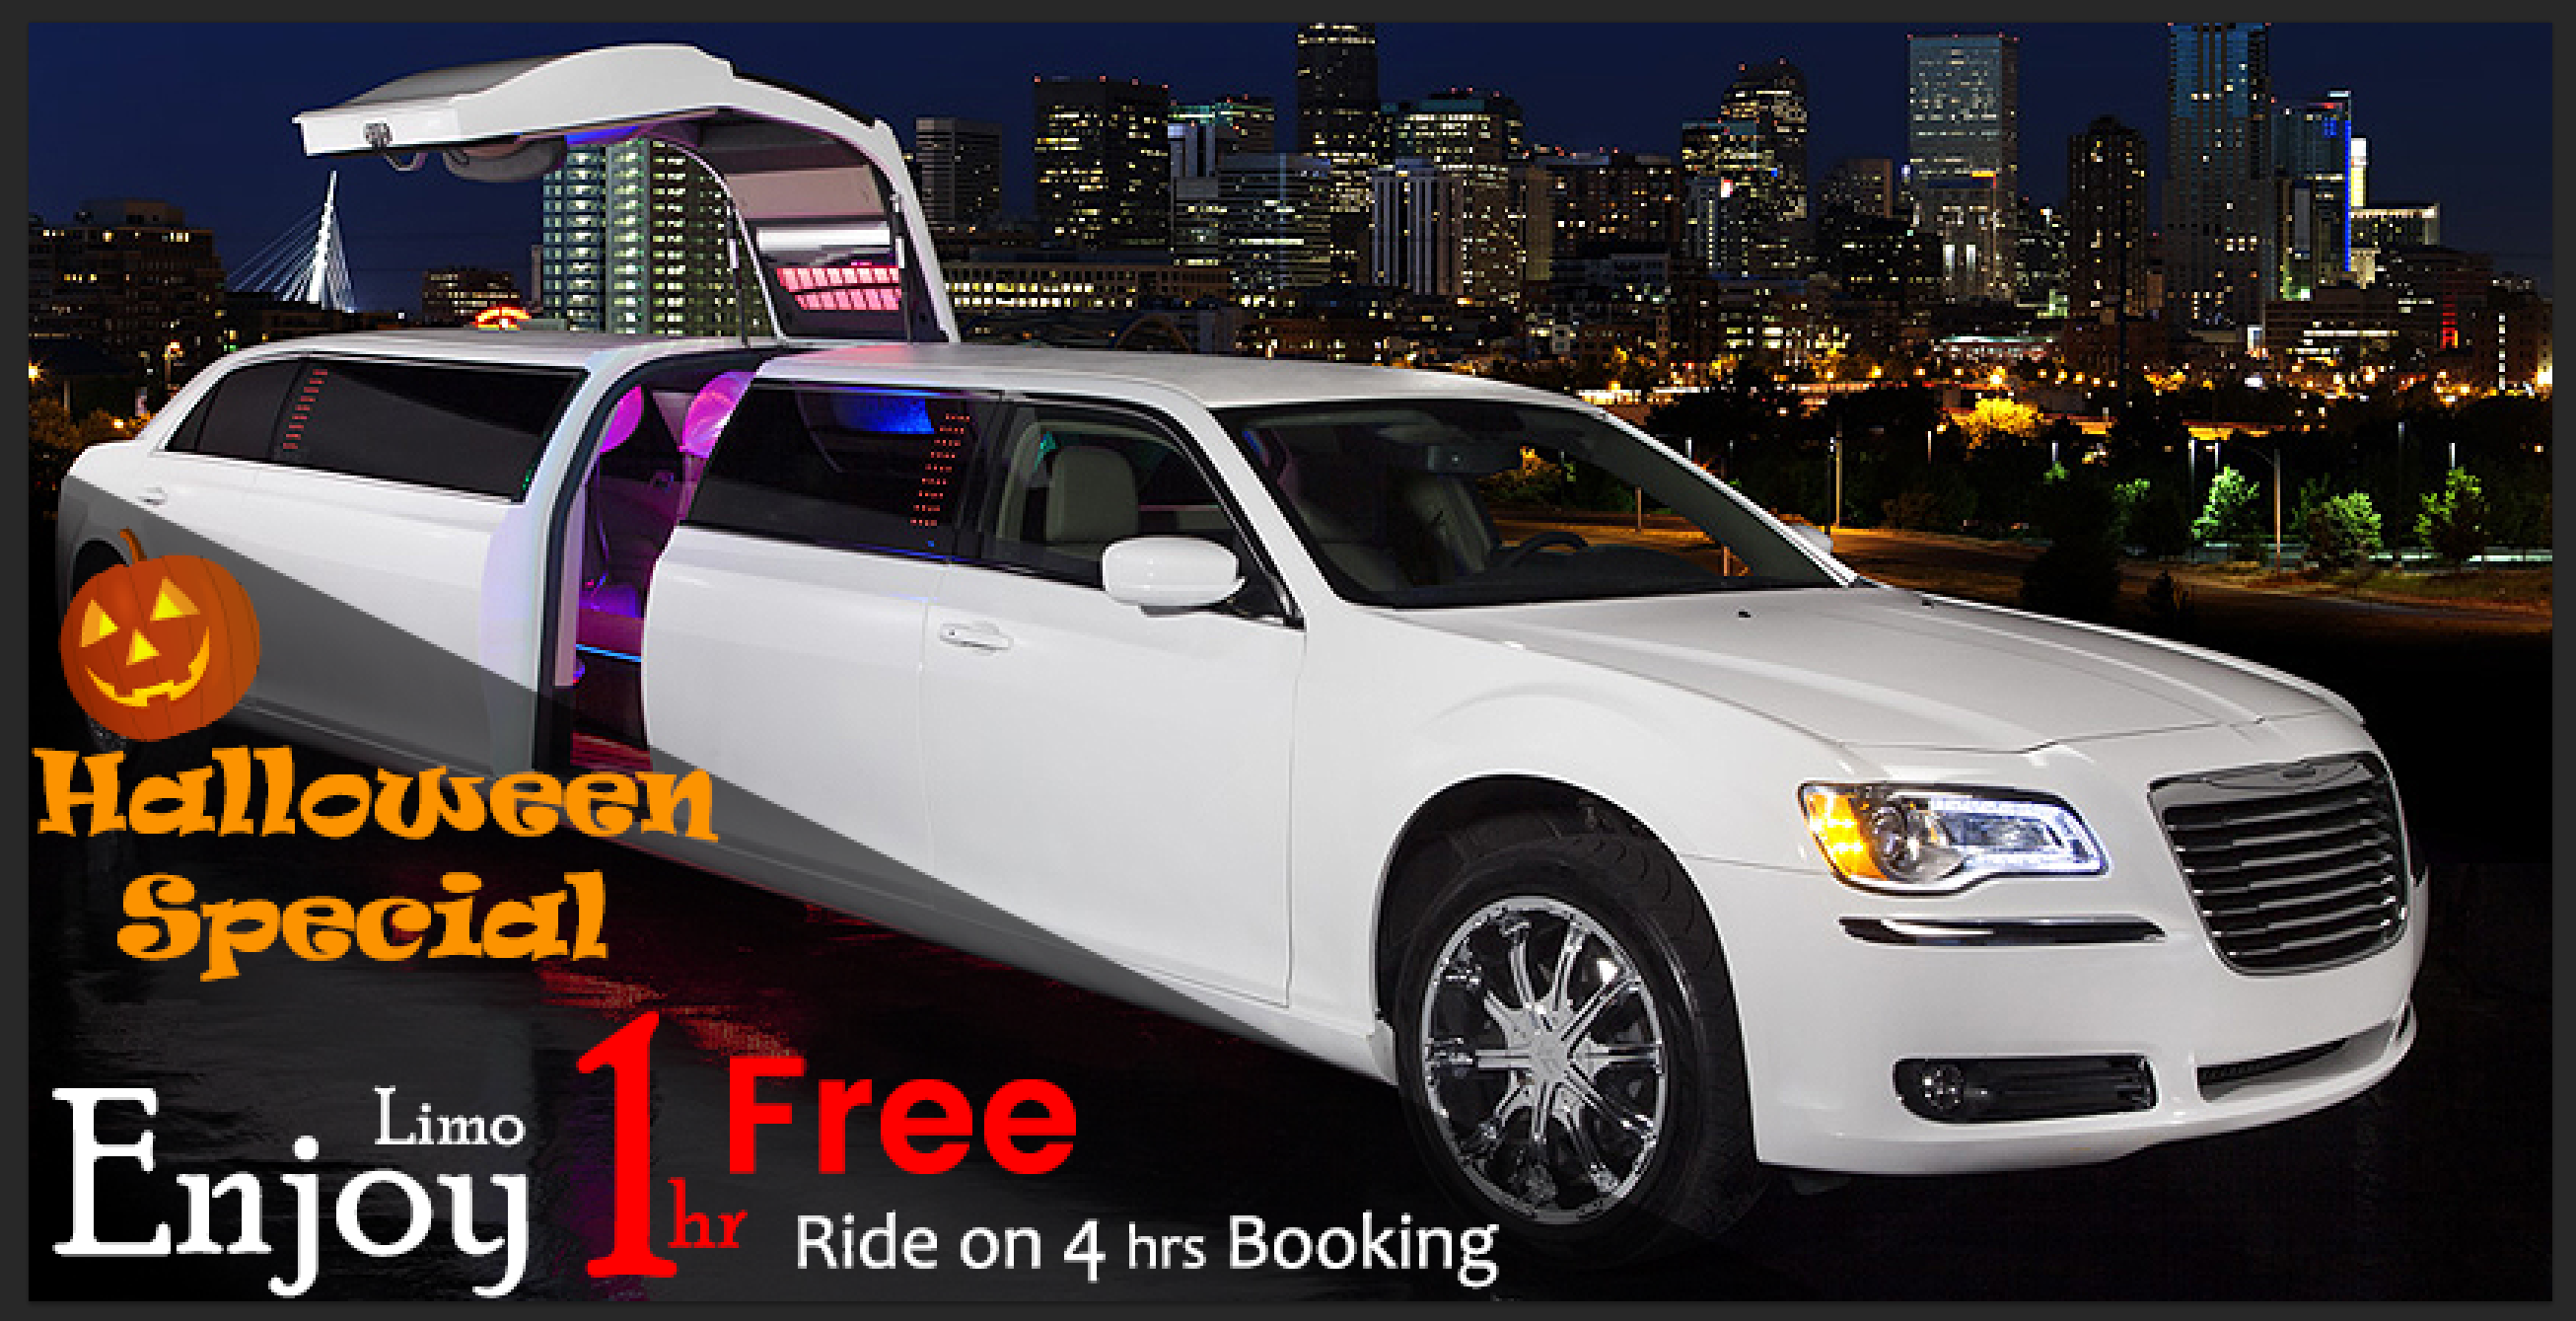 Big Offer For Halloween Night Special 4 Hours Pick Limo To Get 1 Hour Free We Know How Special Halloween Night For Bachelo Limo Limousine Car Limousine